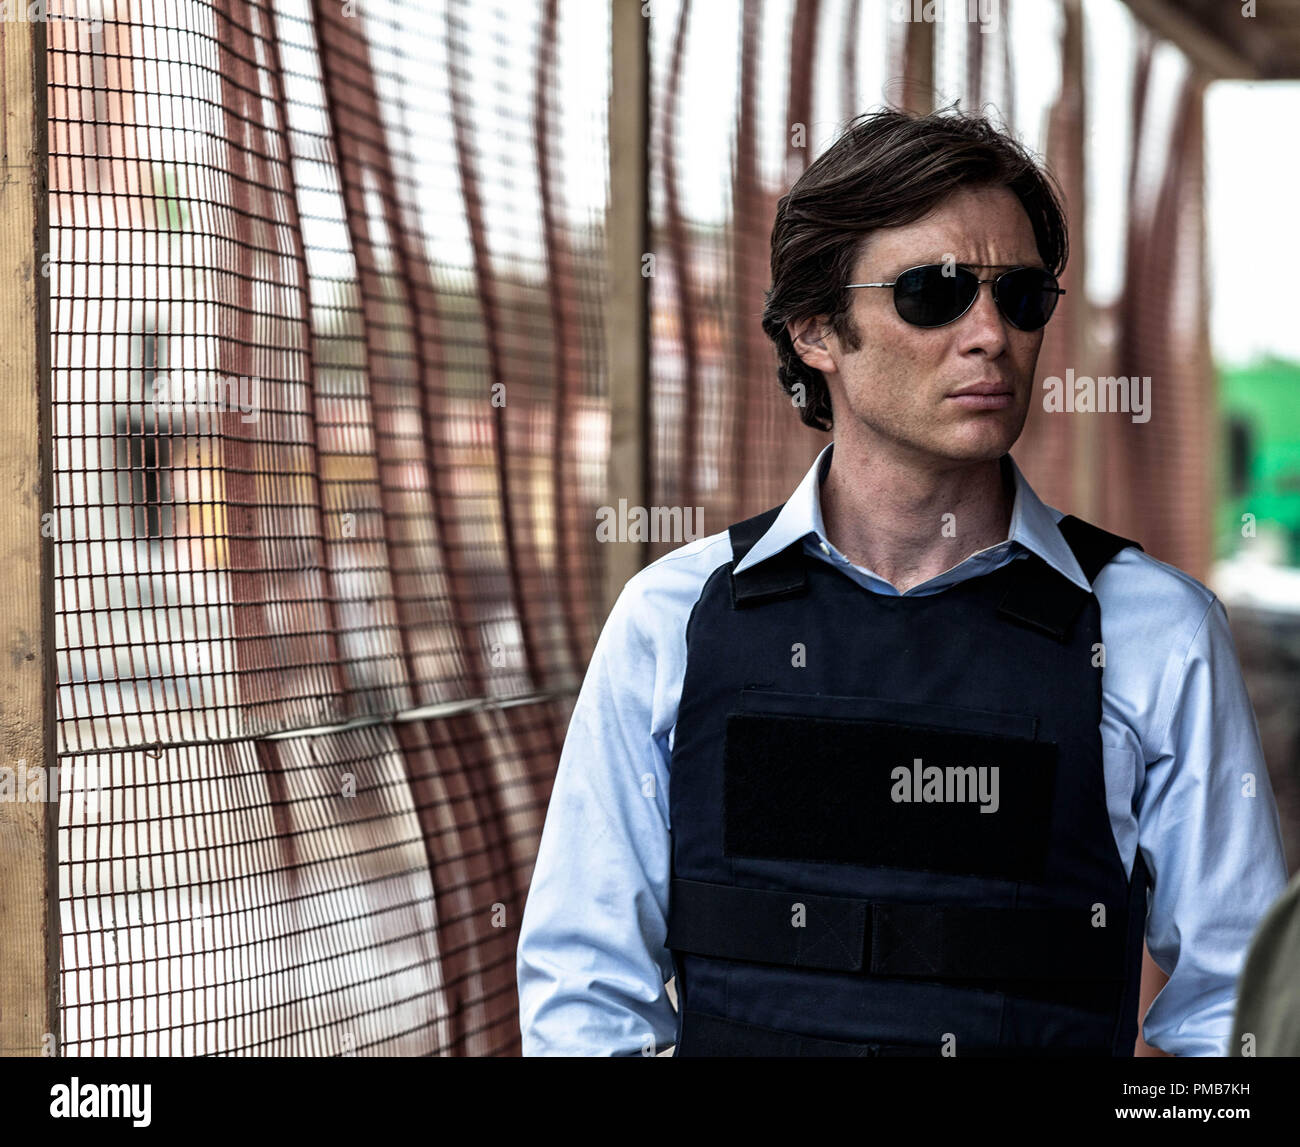 CILLIAN MURPHY as Agent Buchanan in Alcon Entertainment's sci-fi thriller 'TRANSCENDENCE,' a Warner Bros. Pictures release. - Stock Image